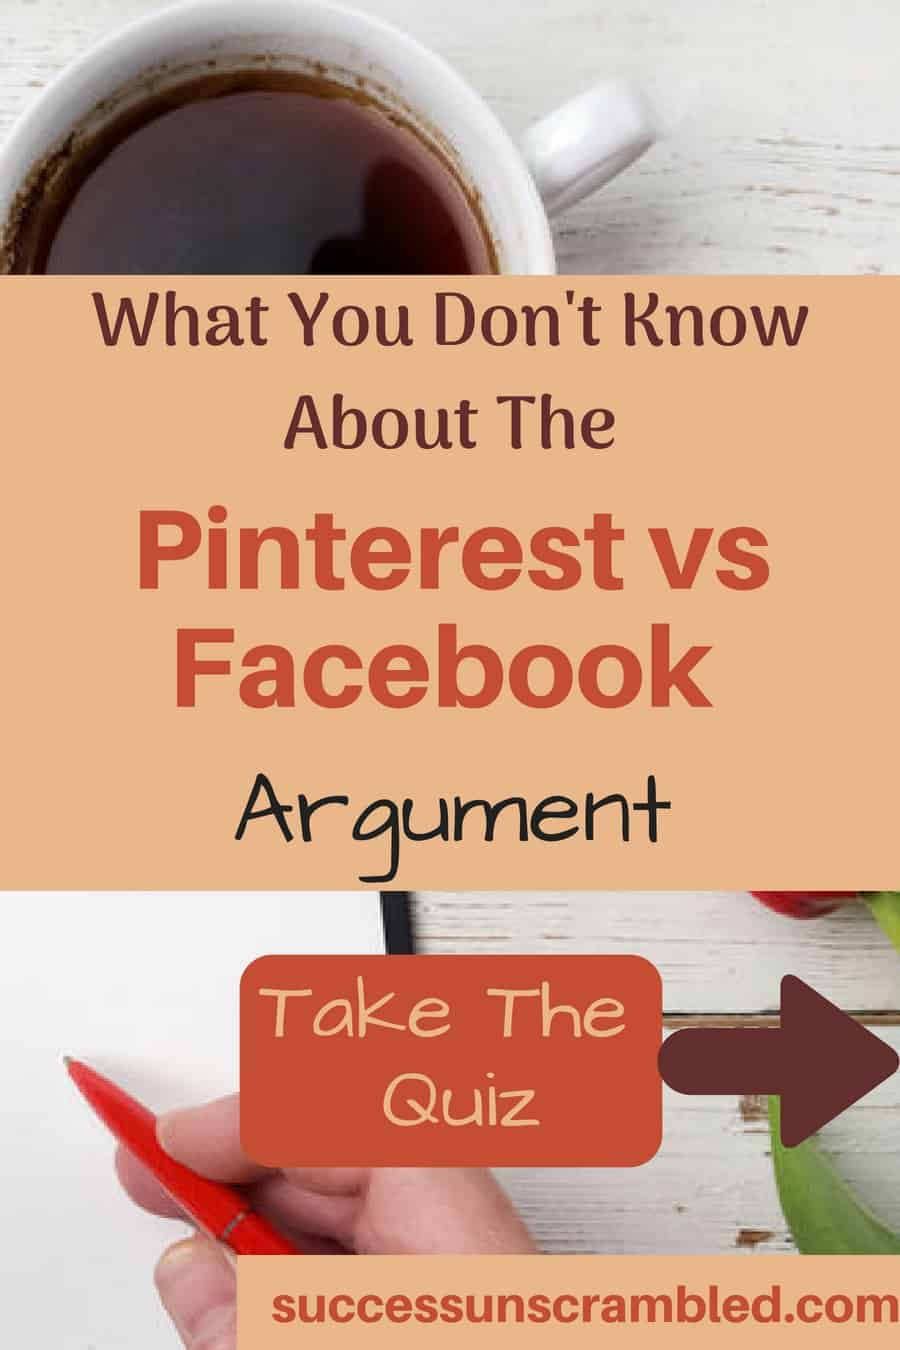 What You Don't Know About The Pinterest vs Facebook Argument